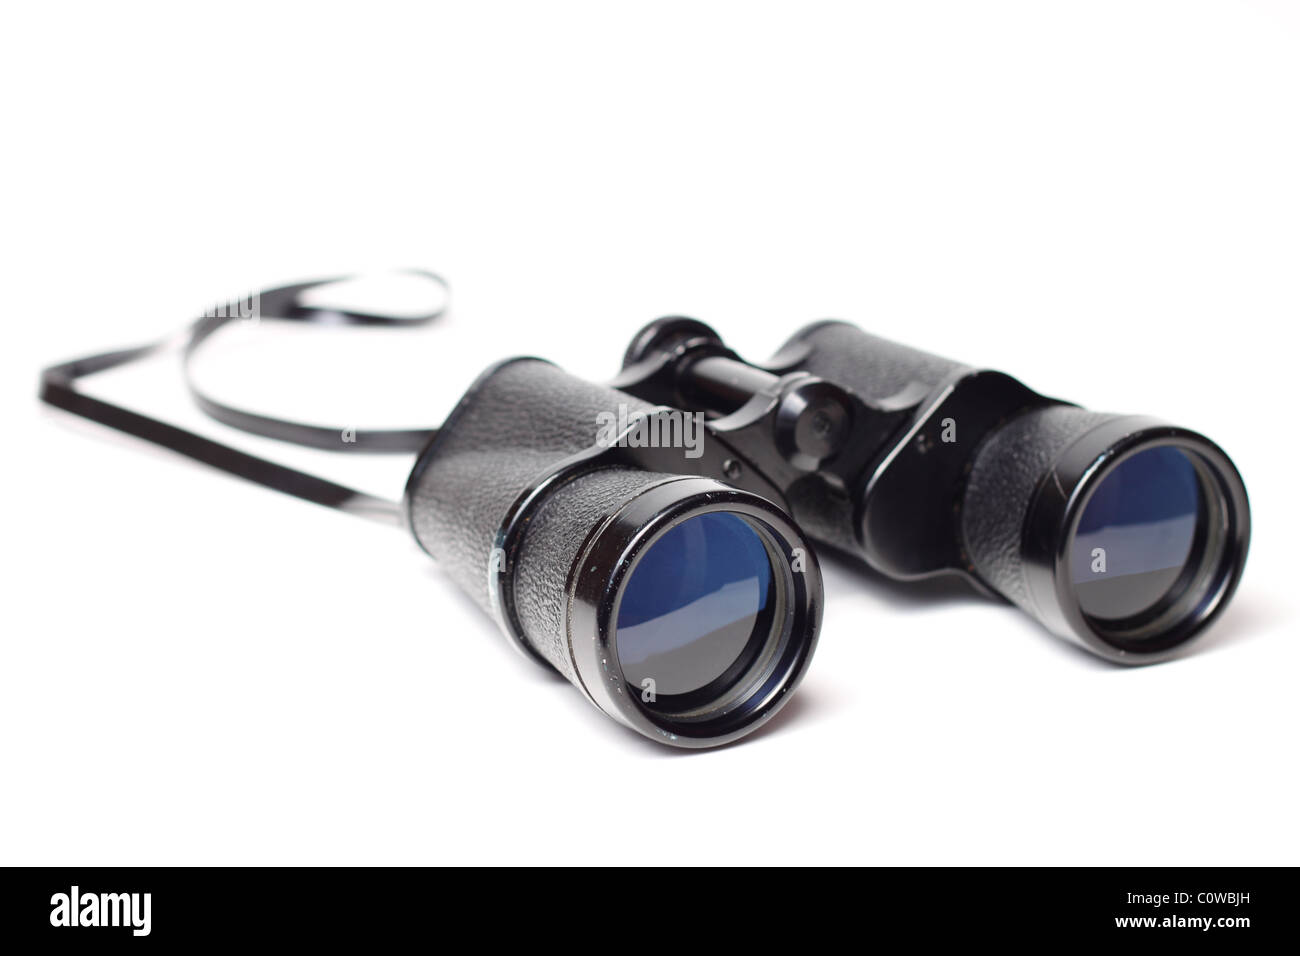 Pair of old binoculars isolated on white background - Stock Image